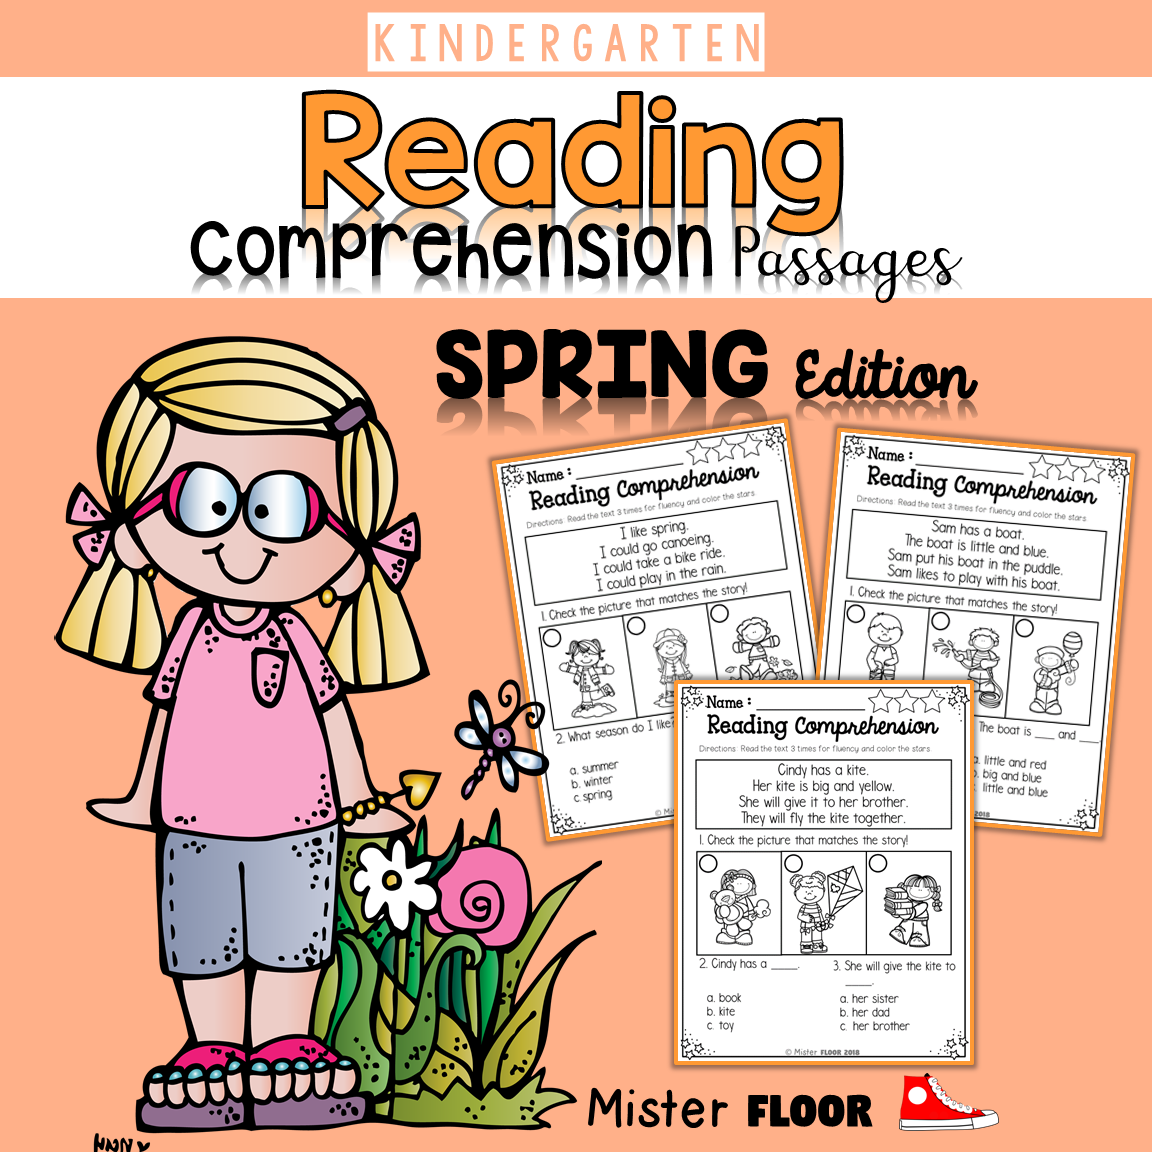 Kindergarten Reading Comprehension Spring